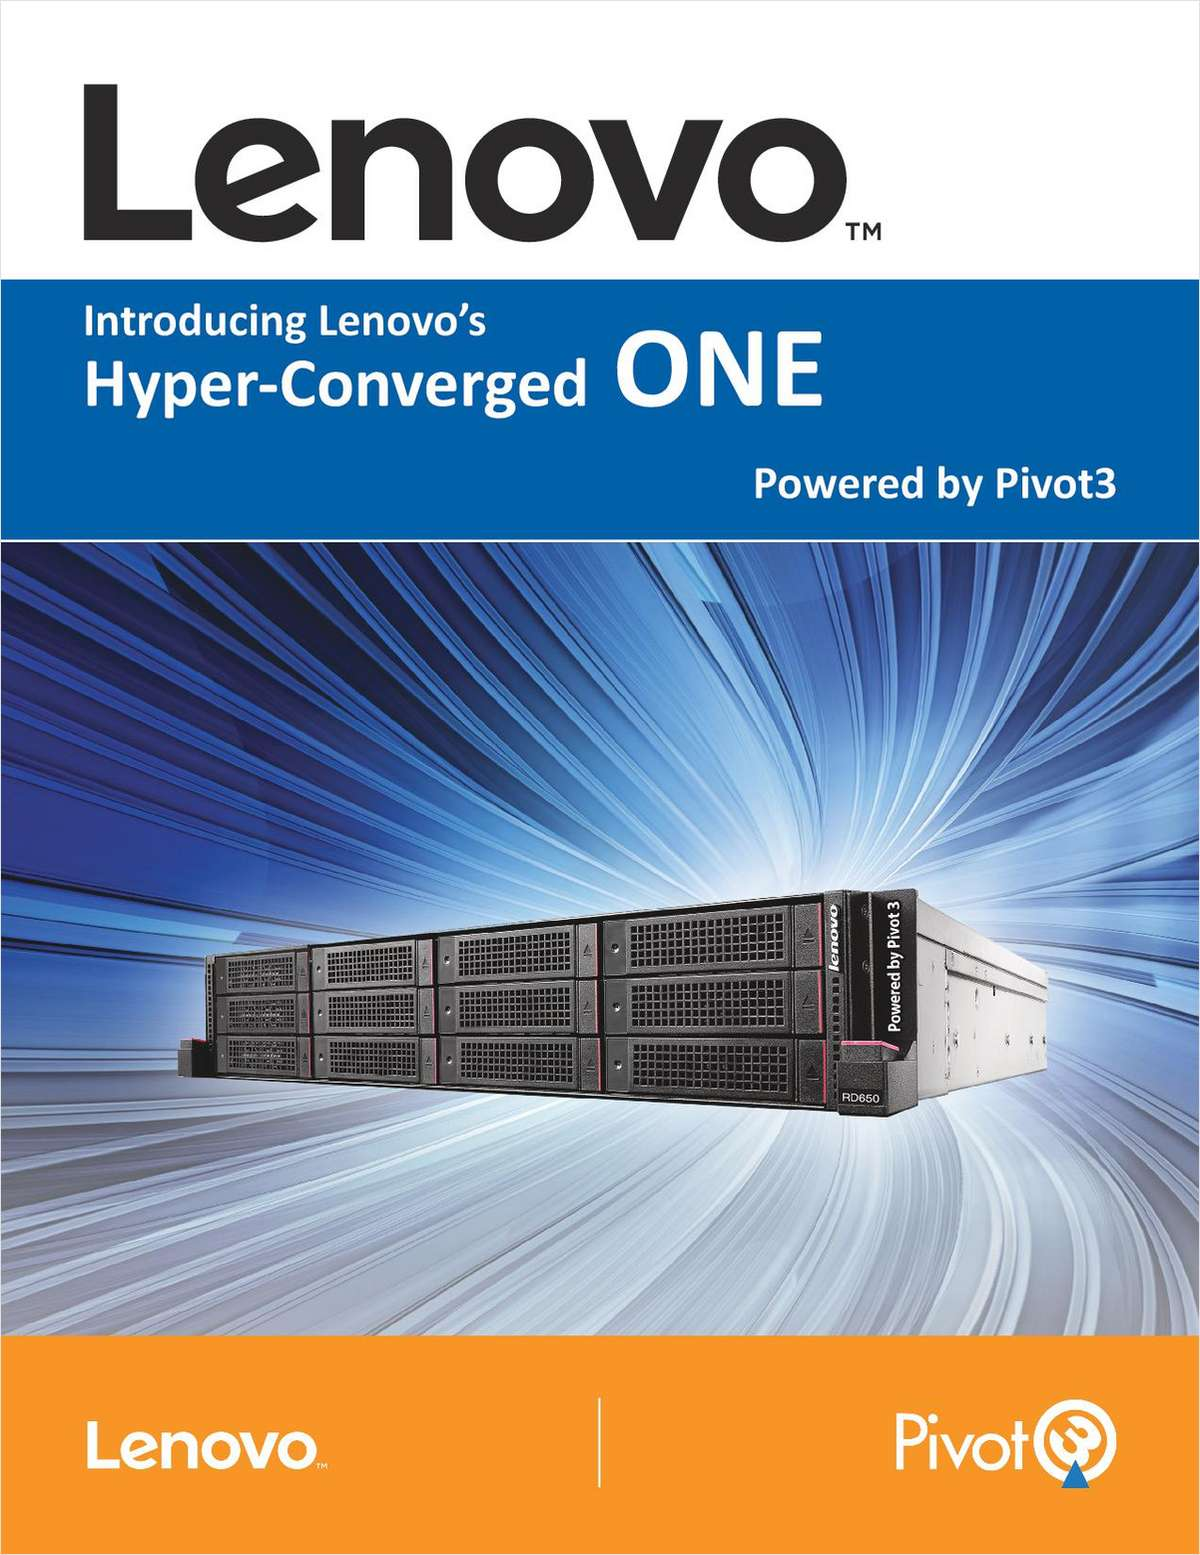 Lenovo and Pivot3 Launch a Global Hyper-Converged Infrastructure Solution